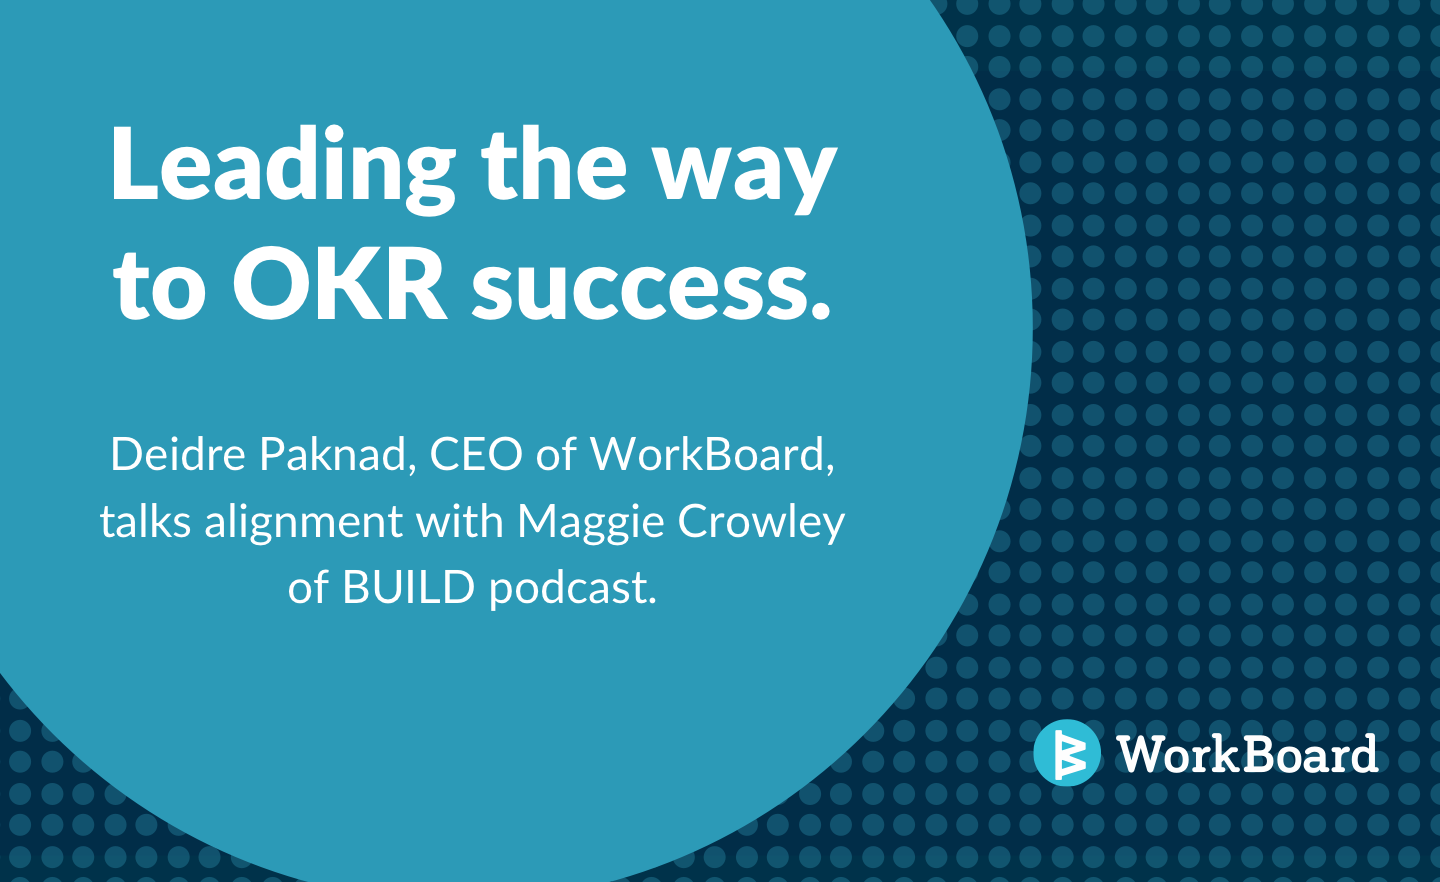 Blog Post: Leading the Way to OKR Success